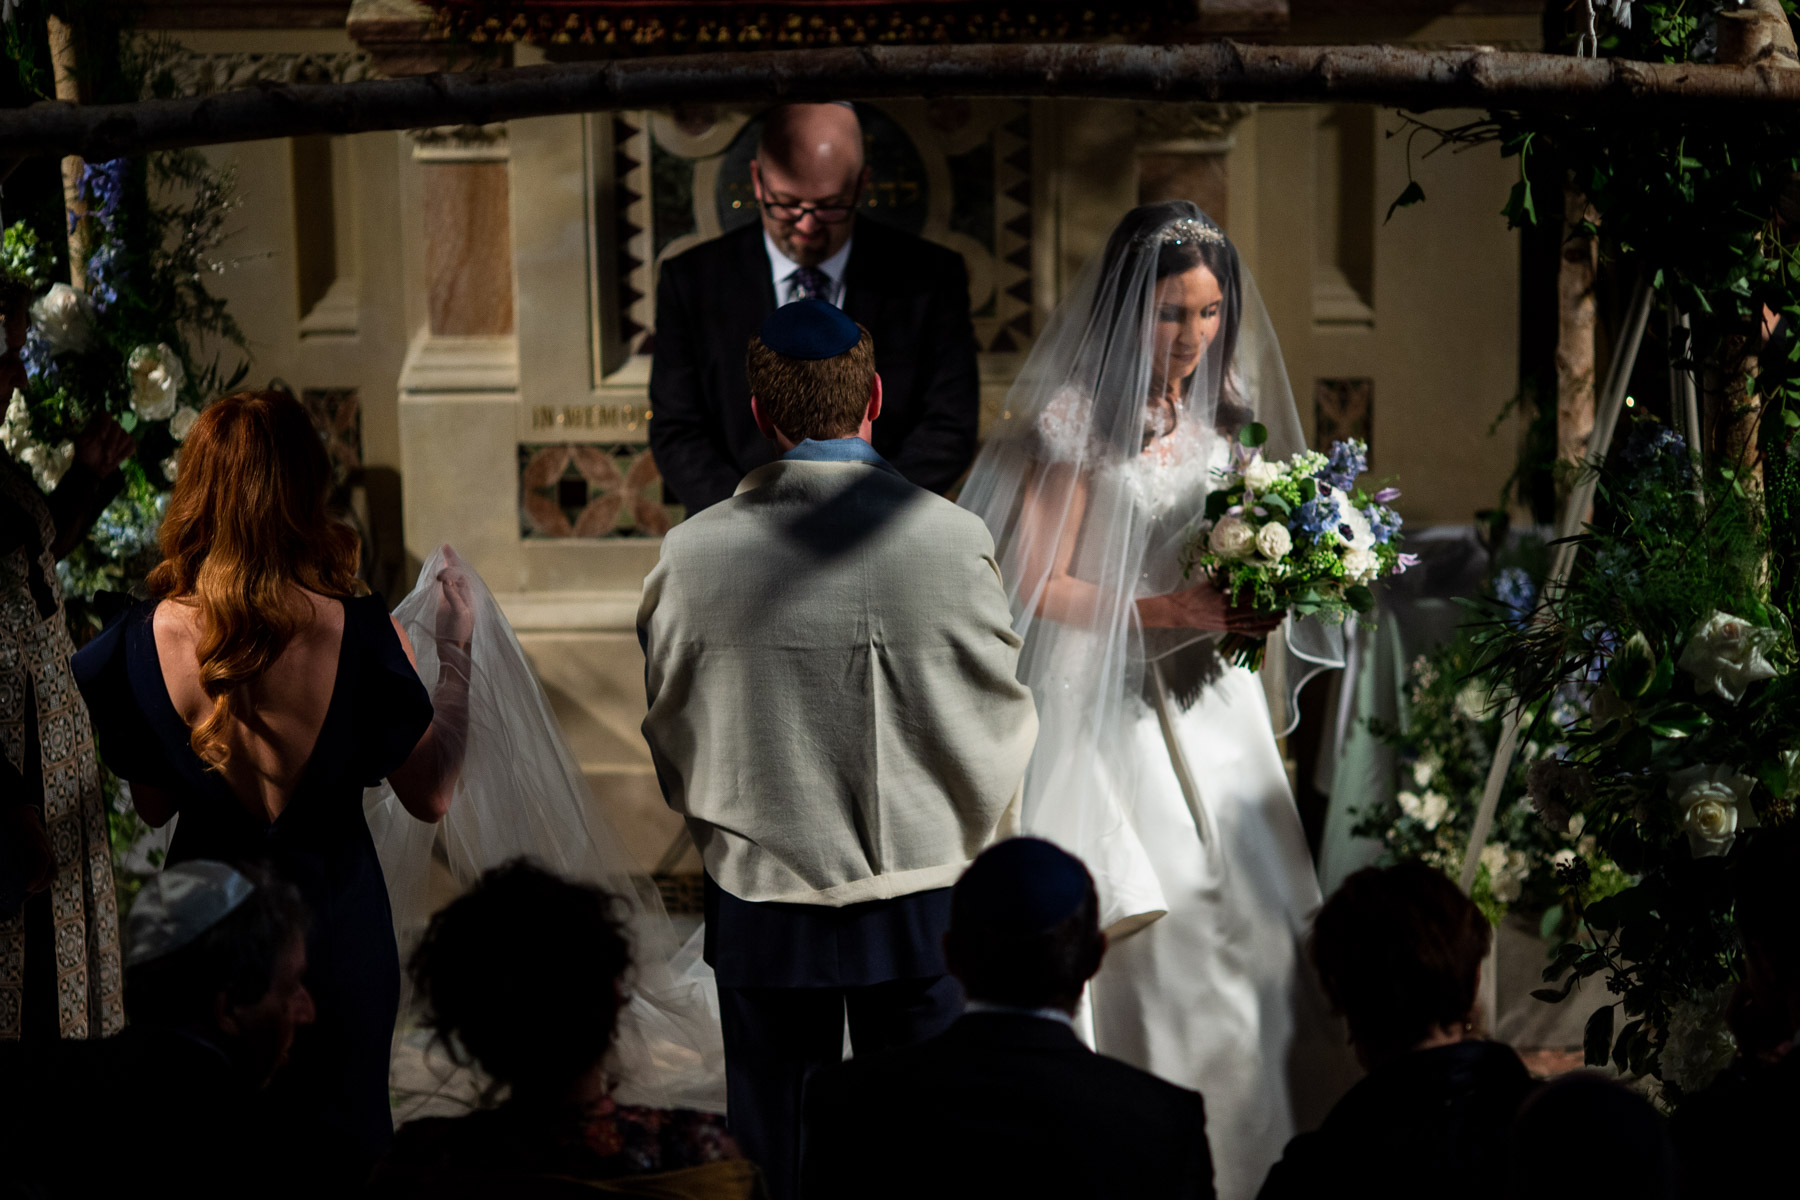 West London Synagogue wedding ceremony in London